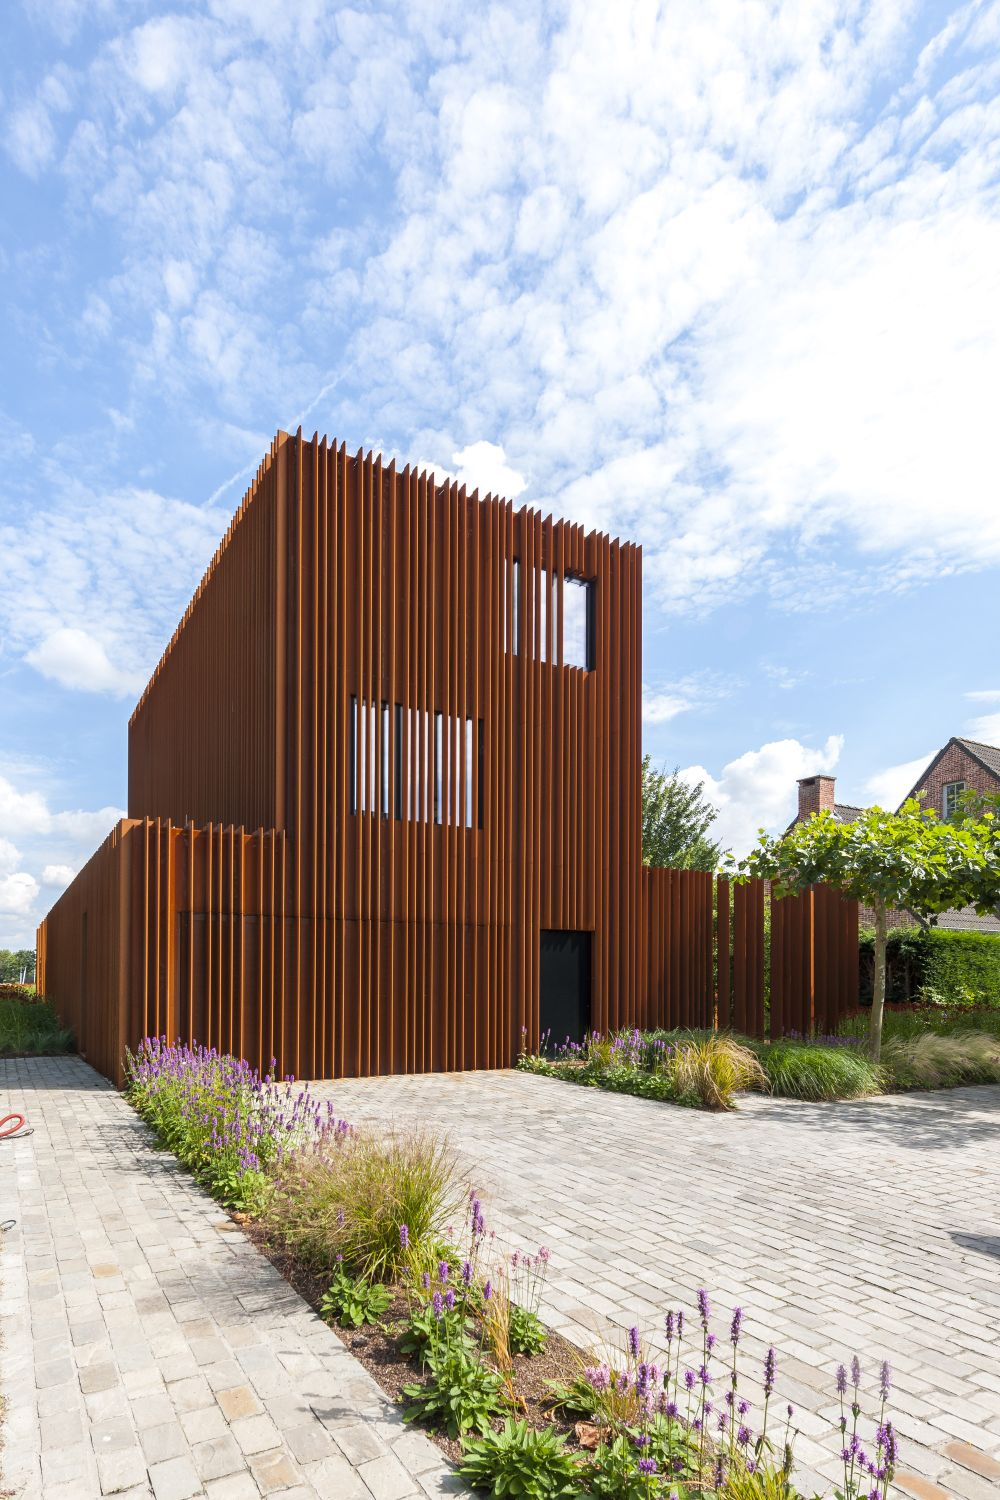 The Corten House by DMOA Architecten